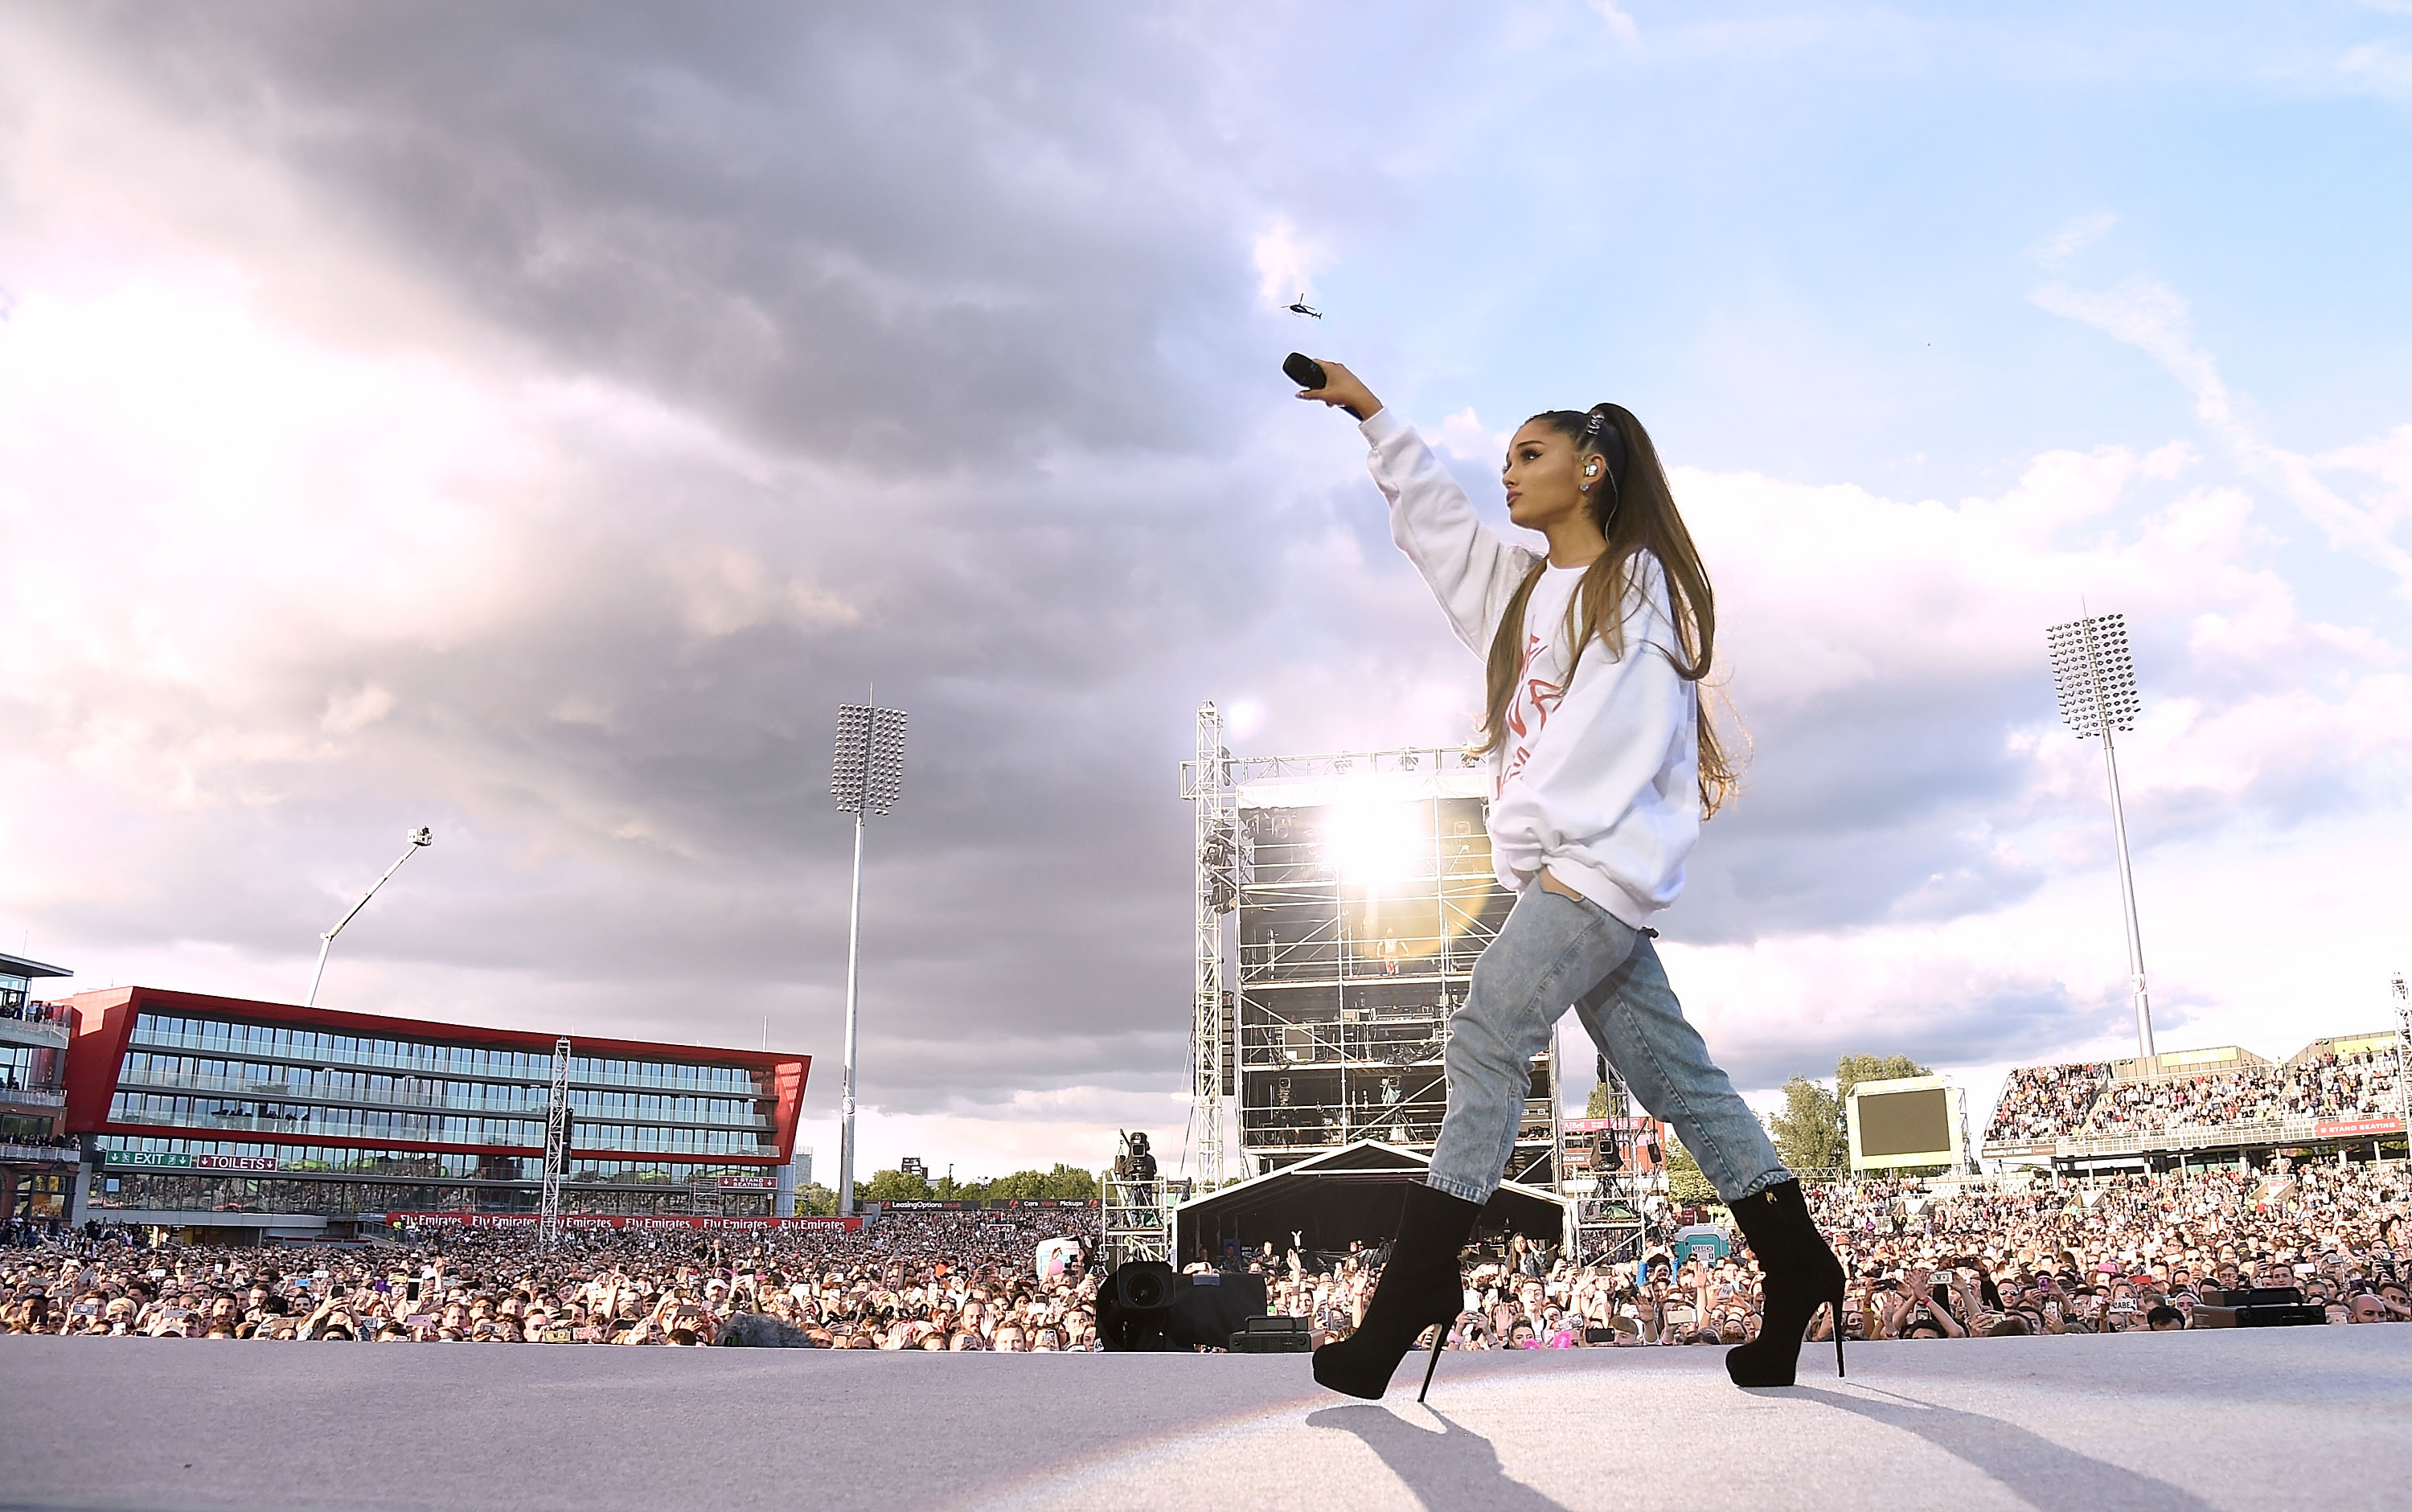 Ariana Grande performs on stage during the One Love Manchester Benefit Concert at Old Trafford on June 4, 2017 in Manchester, England.